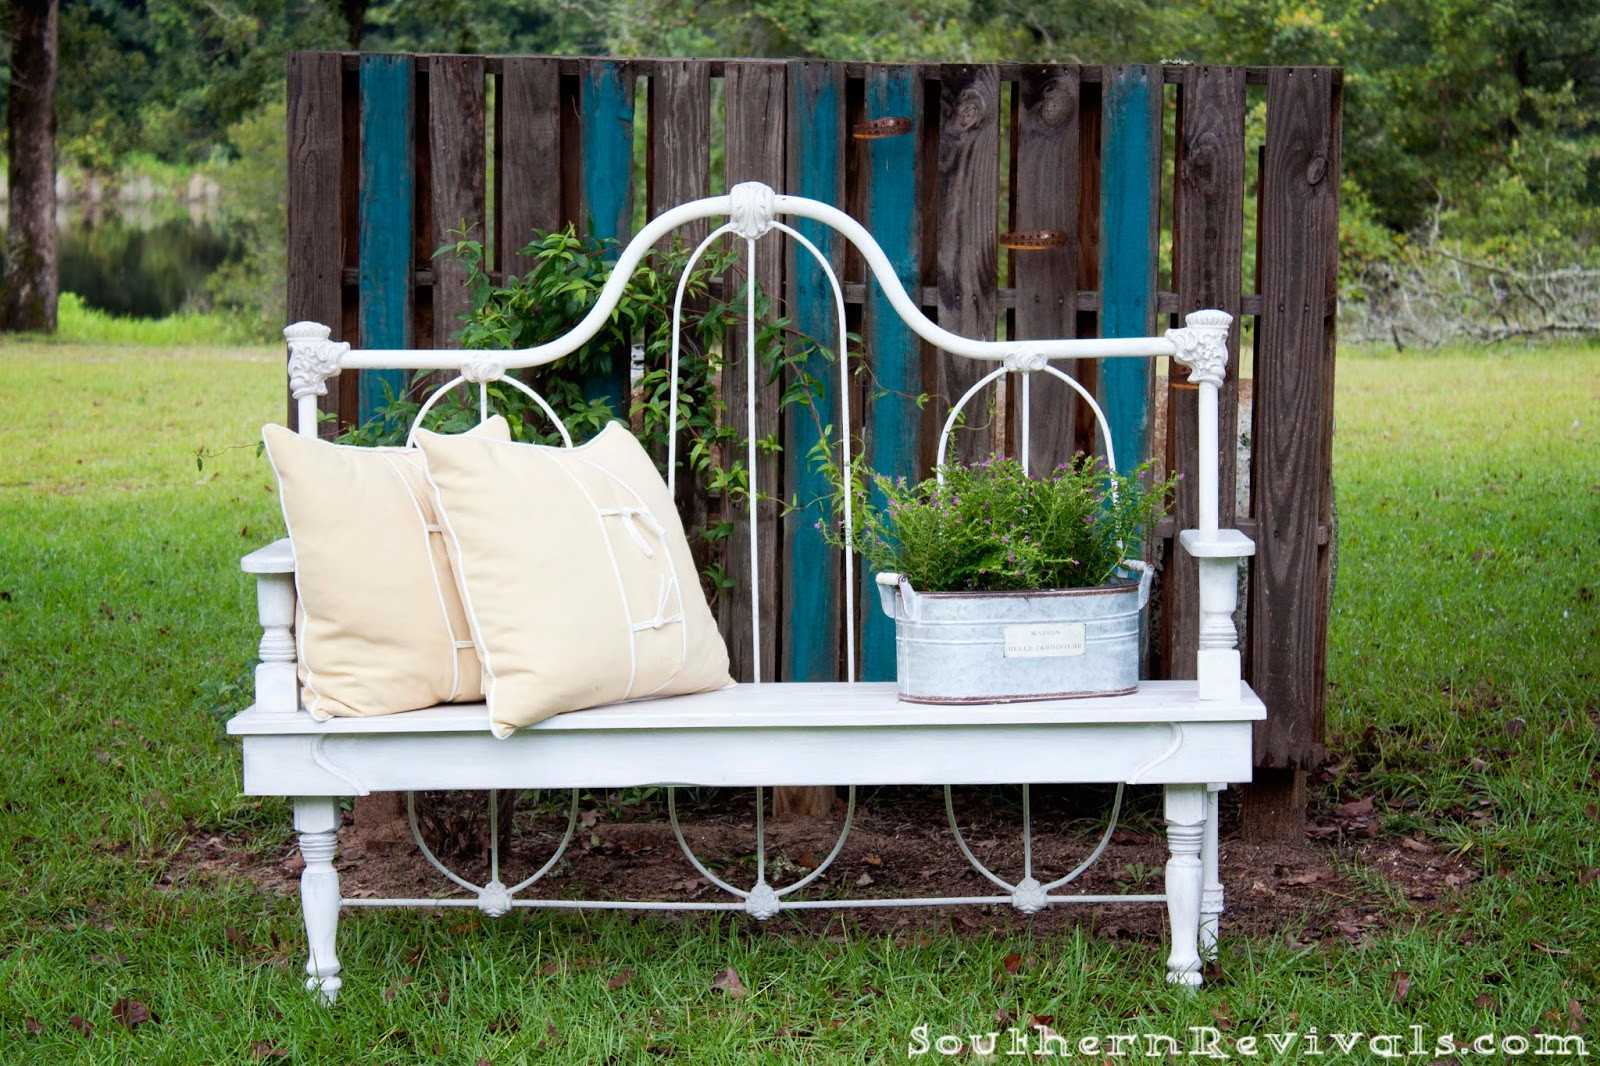 Best ideas about DIY Bed Bench . Save or Pin DIY Repurposed Metal Headboard Bench Southern Revivals Now.